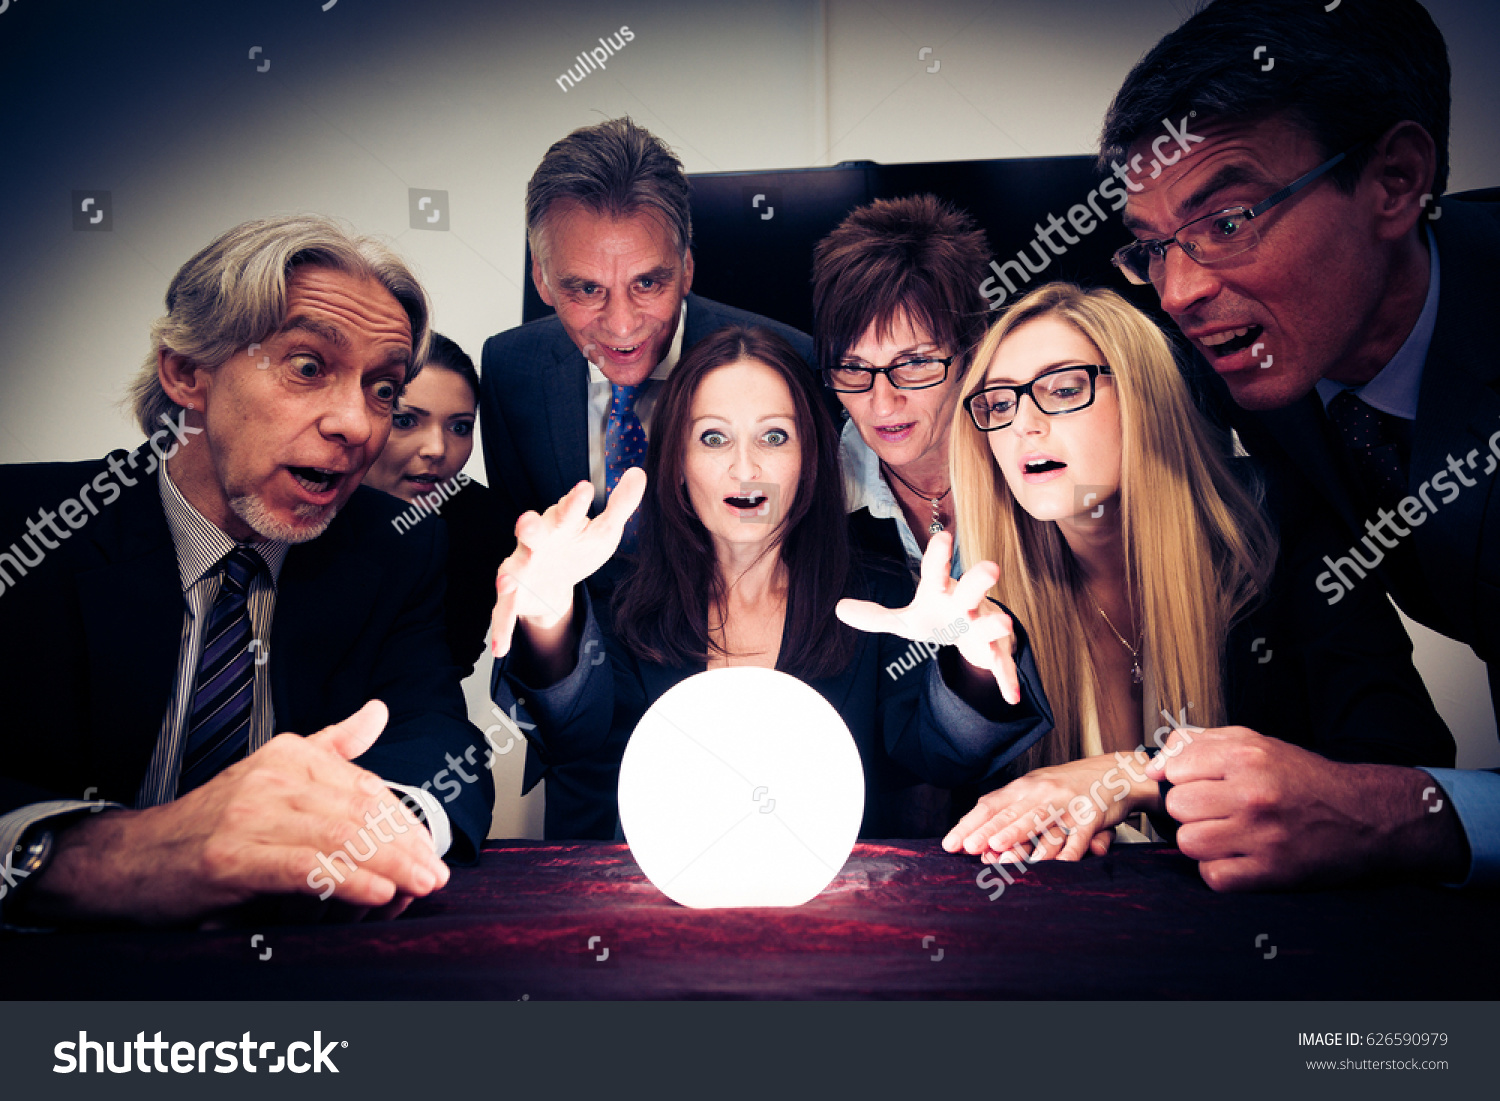 Business Team Using A Crystal Ball To Look Into Future #626590979